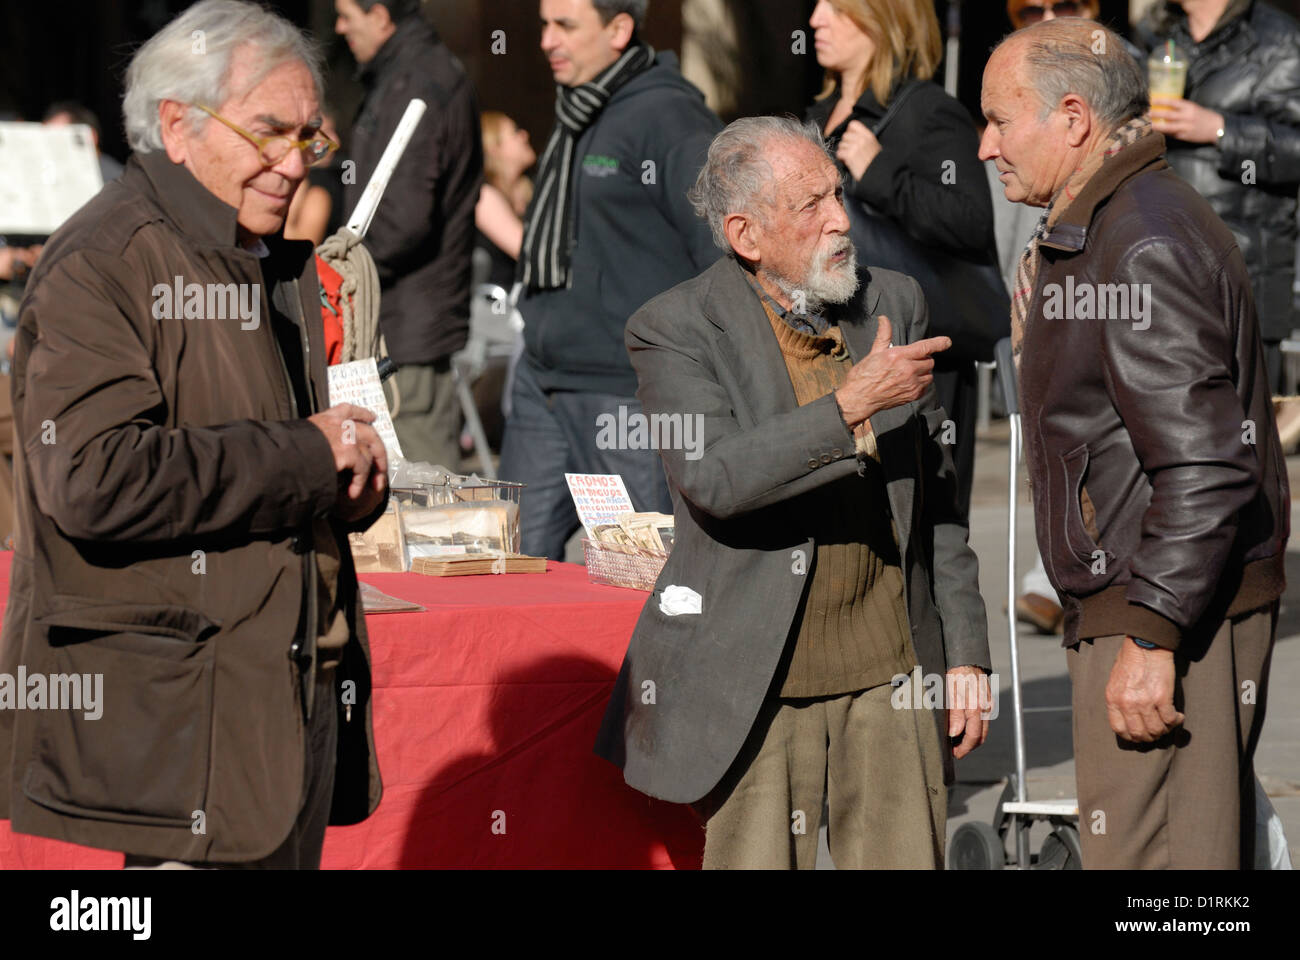 Barcelona, Catalonia, Spain. Placa Real - Sunday stamp and collectors' market. - Stock Image